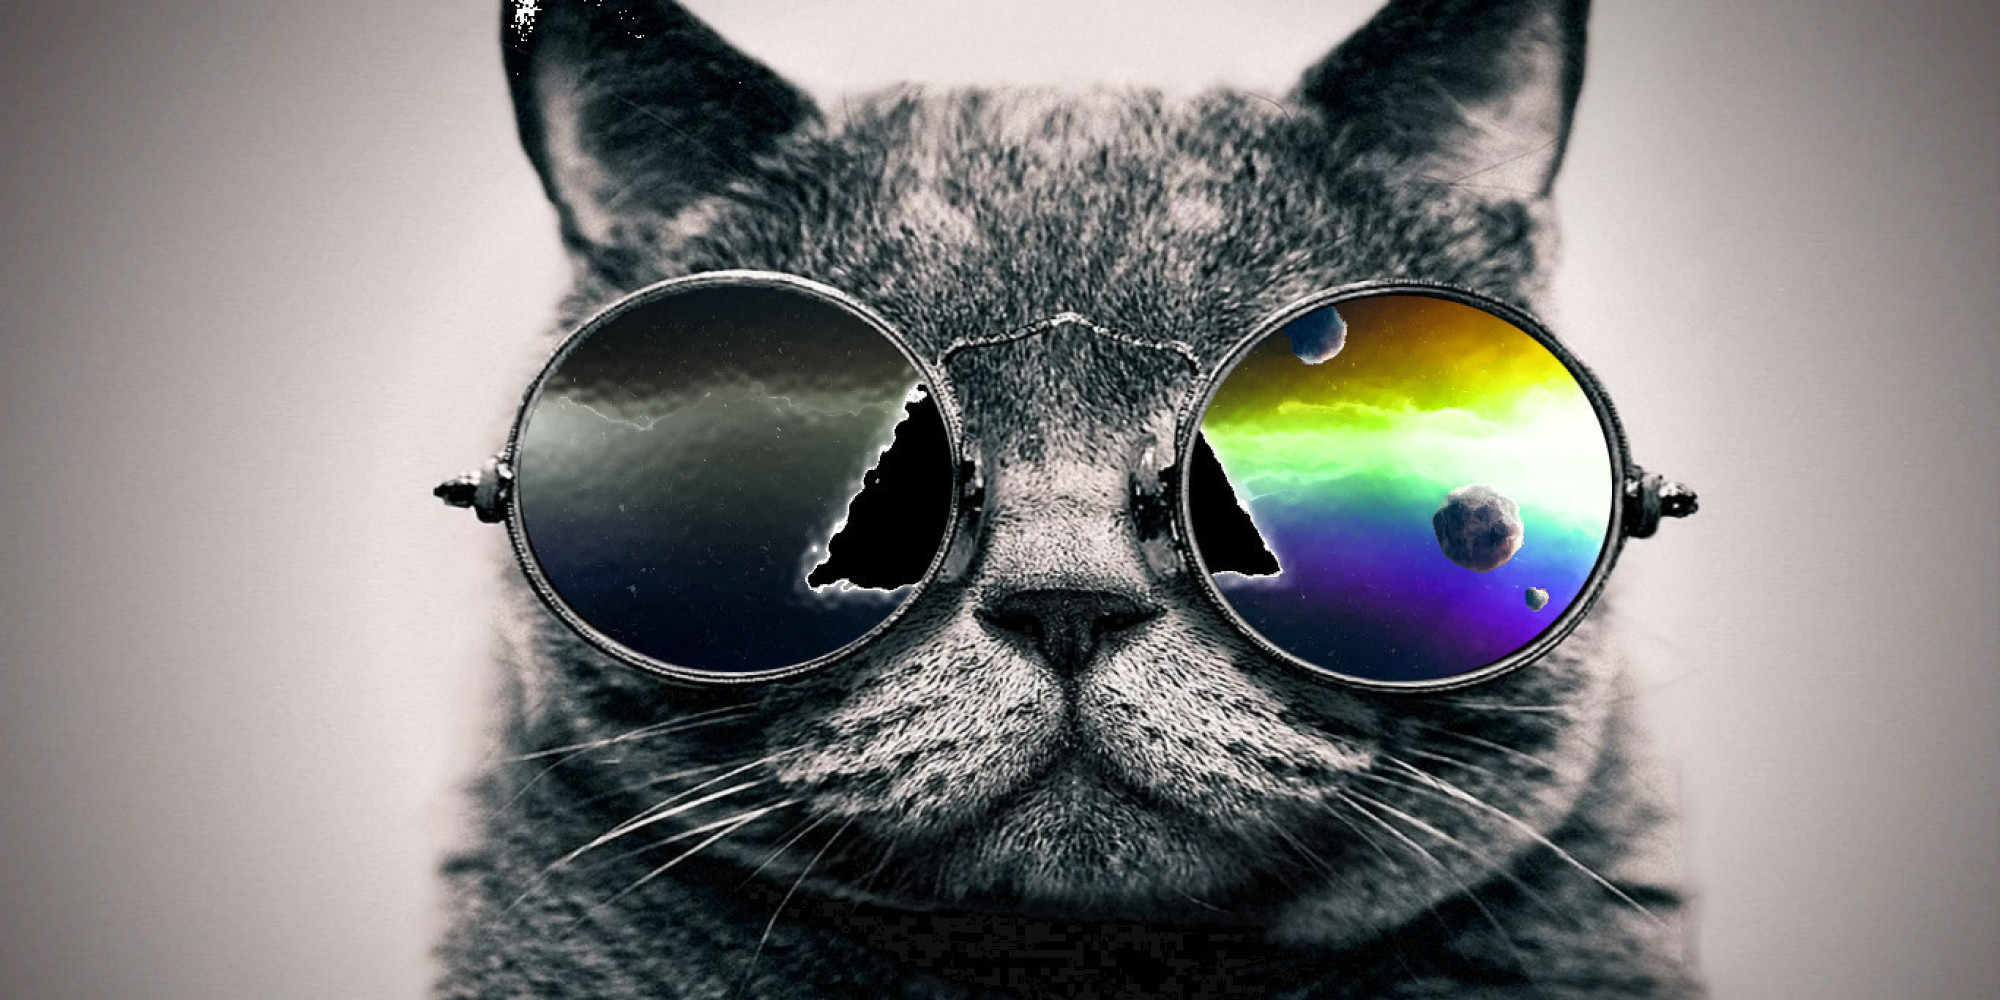 cool cat desktop cats resolution digital google artwork amazing widescreen mac 1000 wallpapers 2000 backgrounds cliparts awesome kitty ever kittens